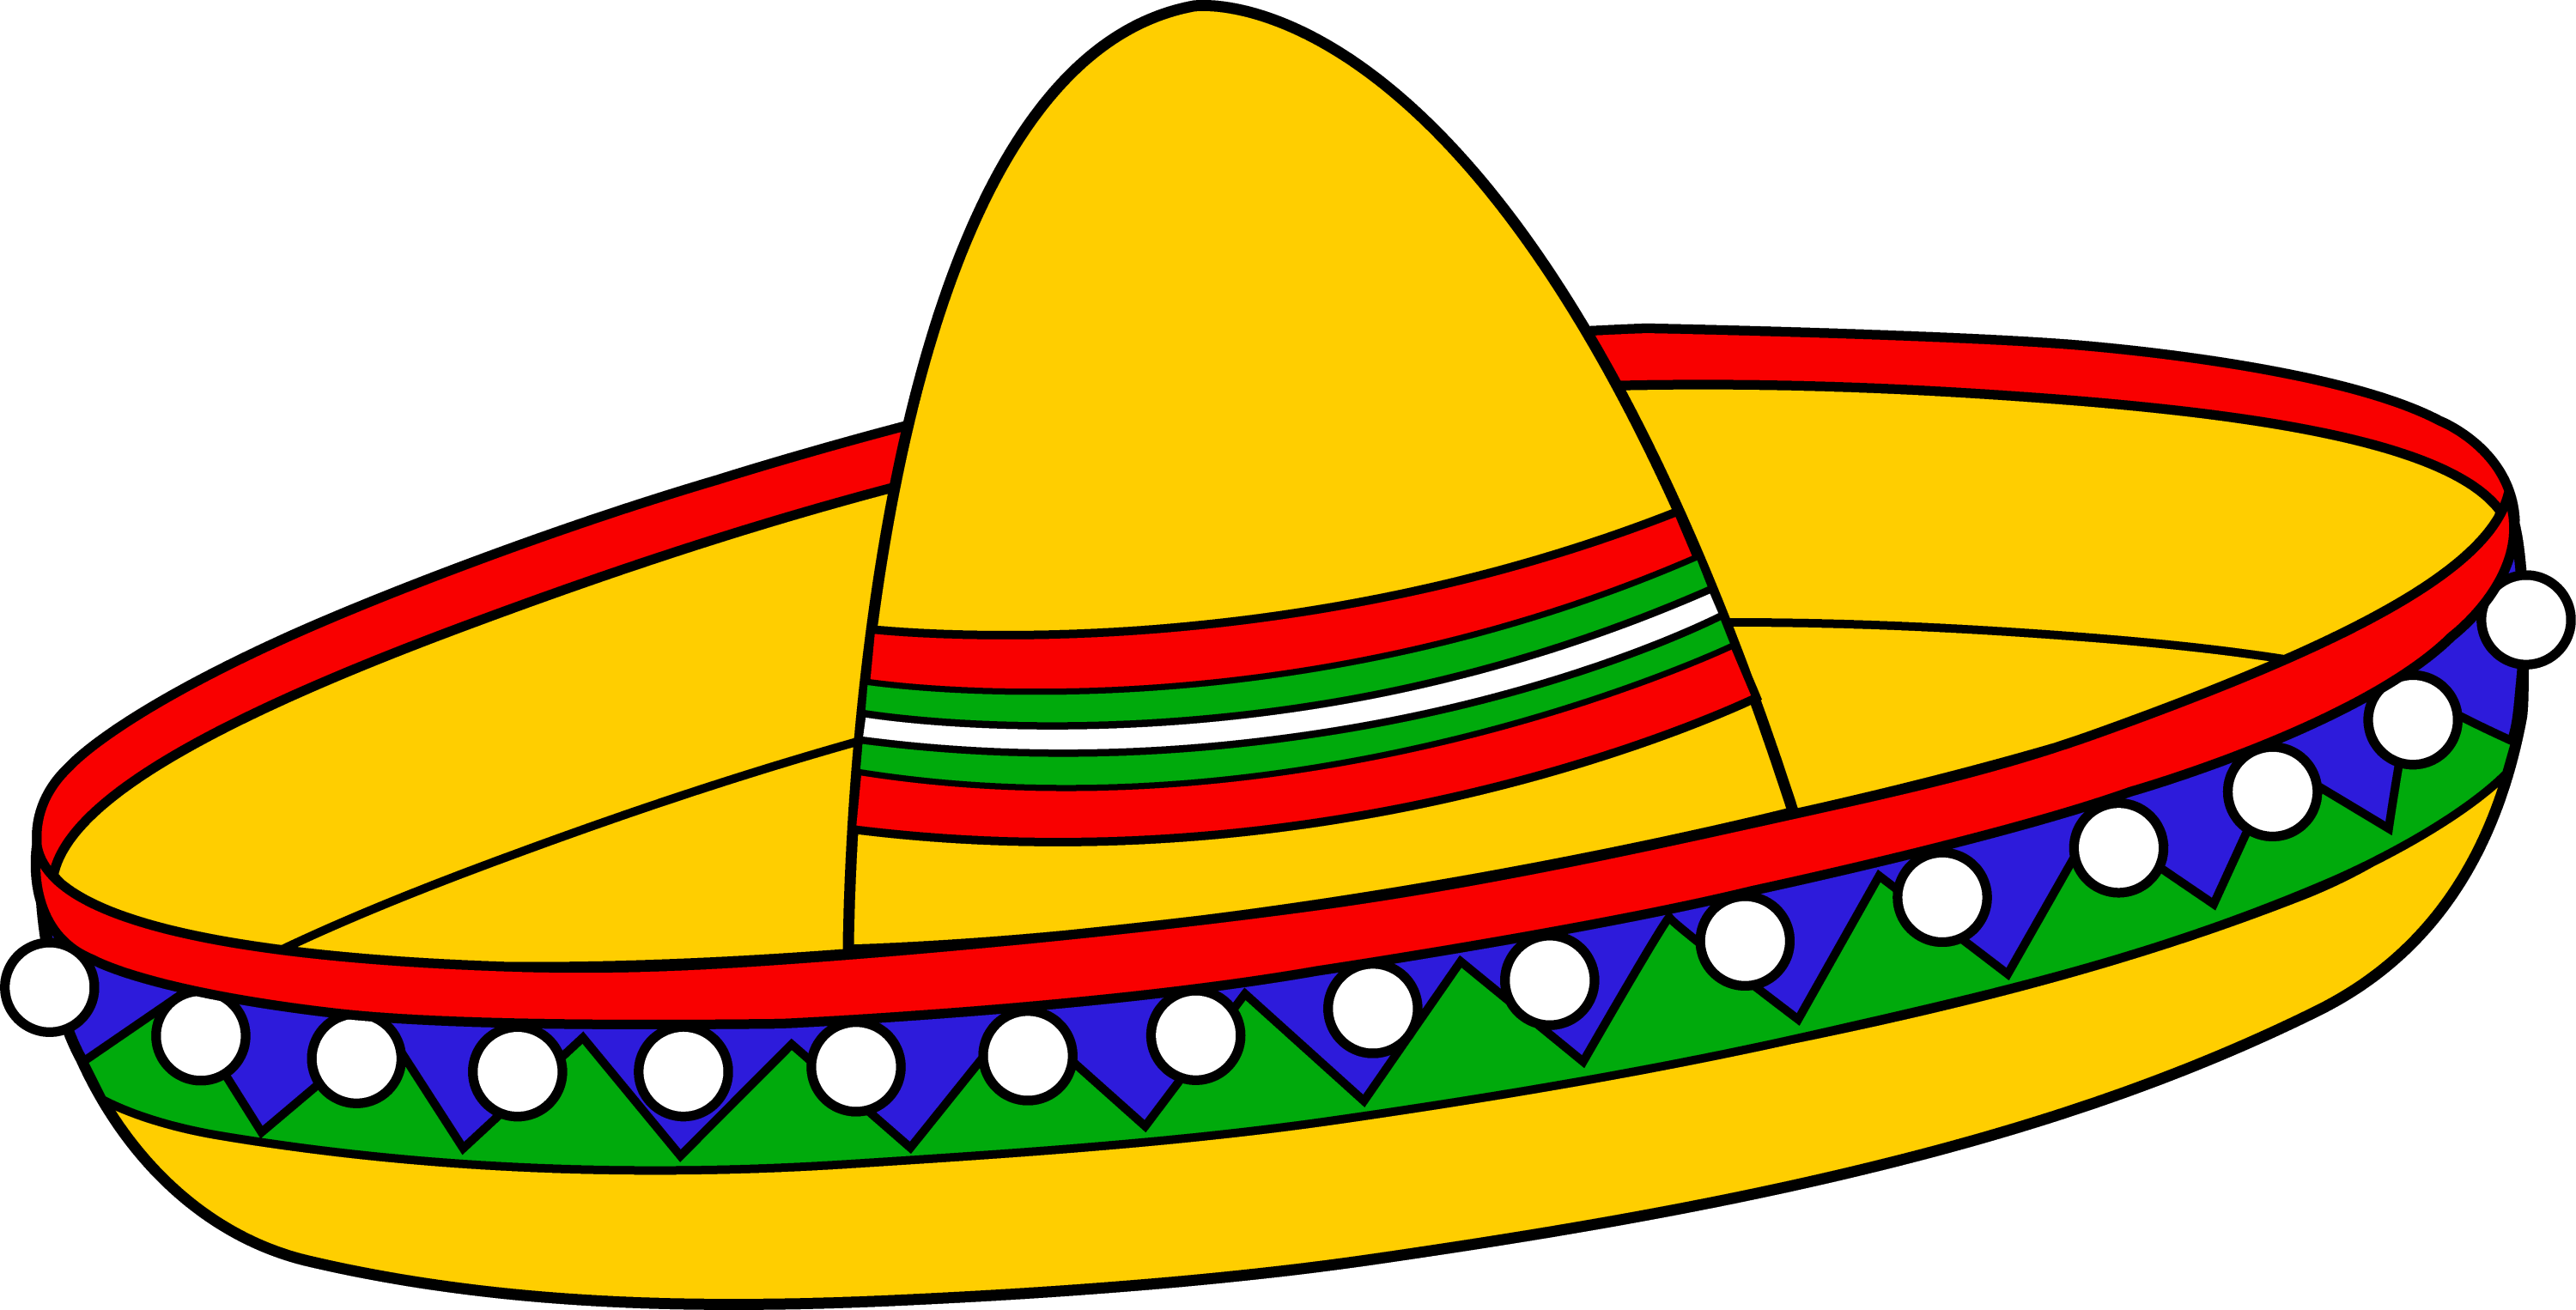 c723ac7be61 Colorful Mexican Sombrero Hat - Free Clip Art